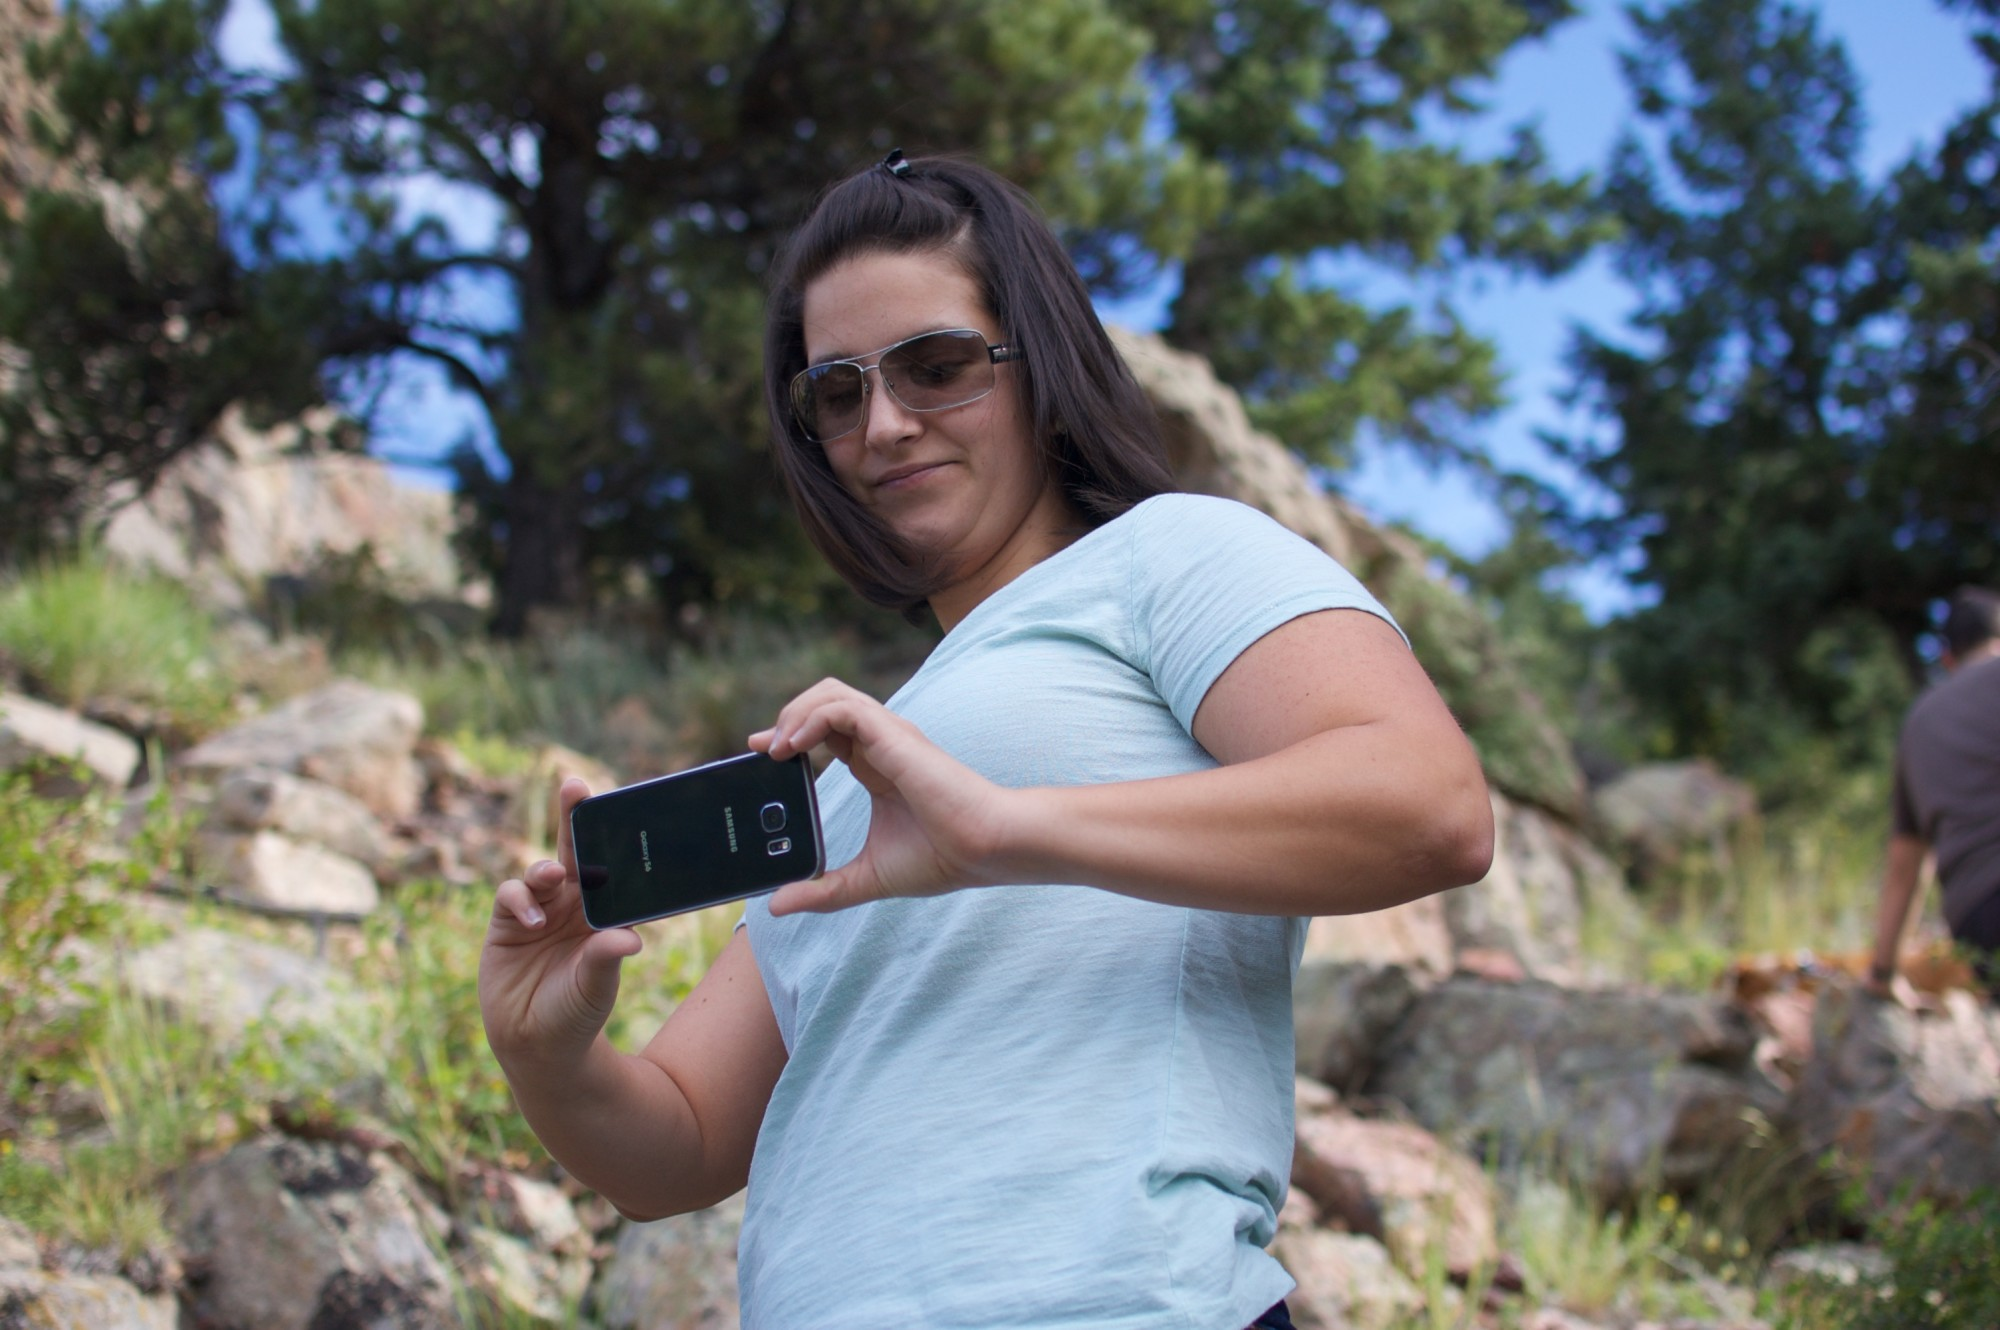 Jessy taking a picture with her cell phone on a hike